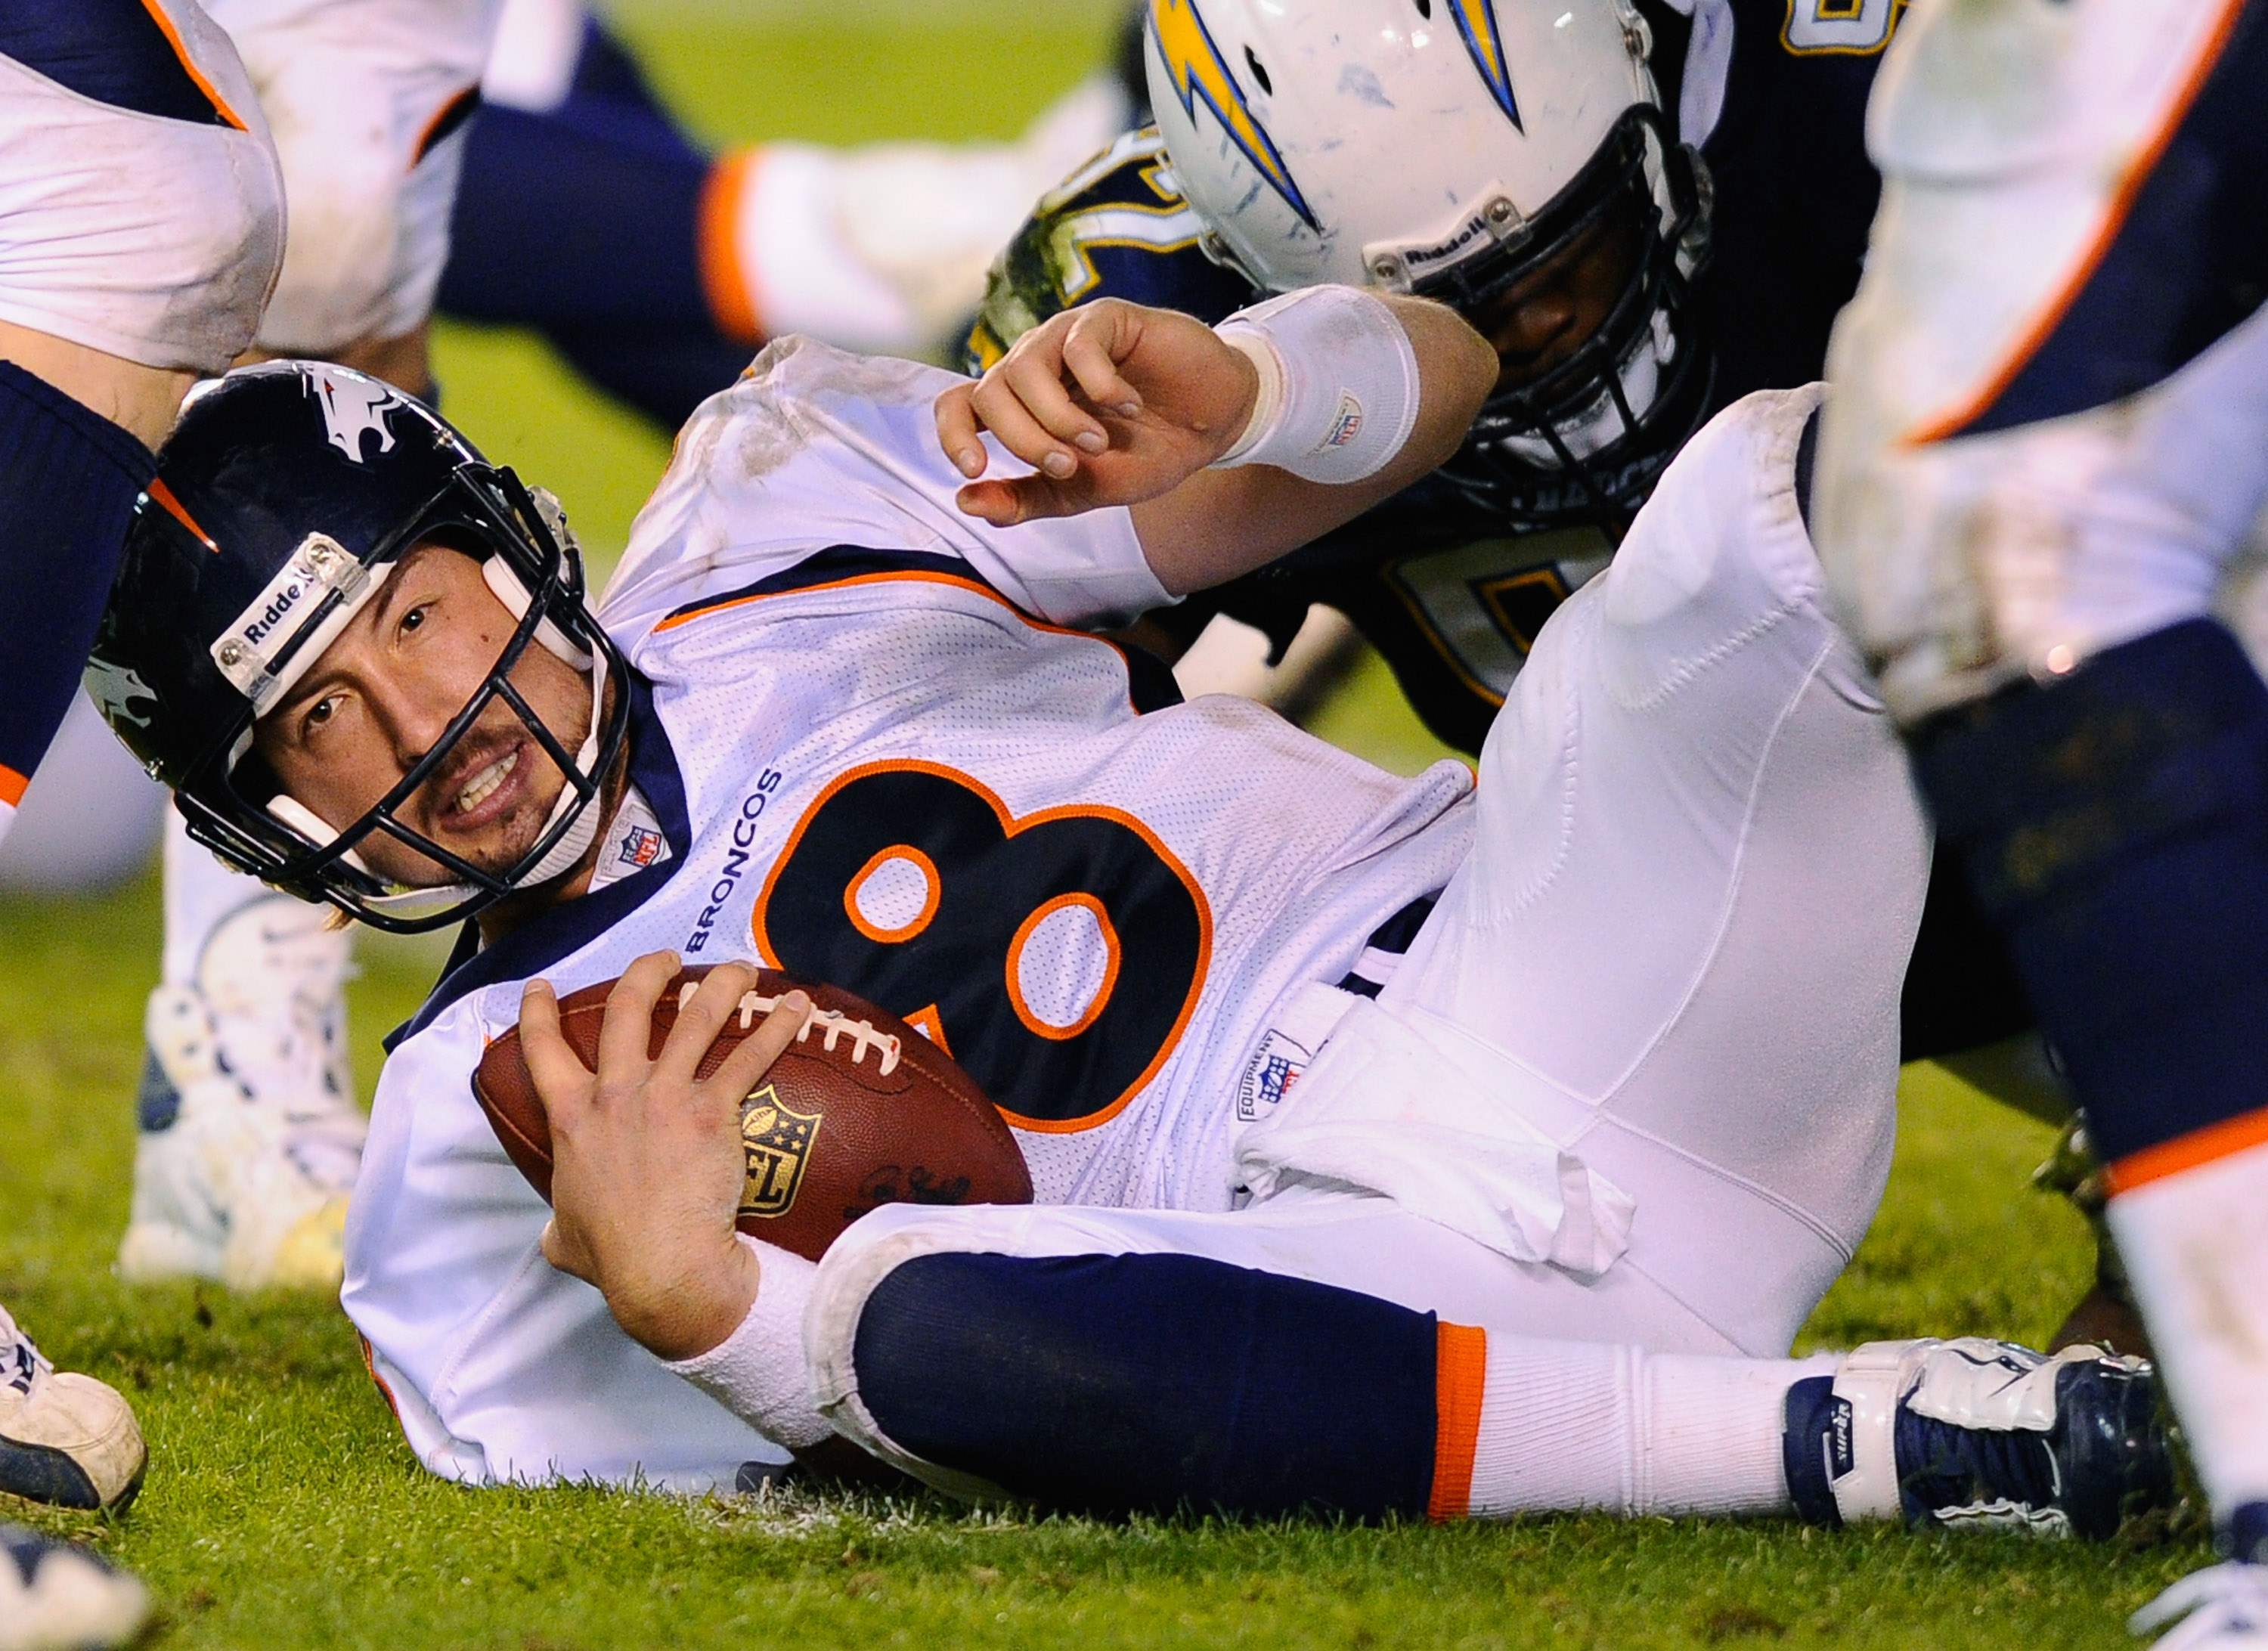 SAN DIEGO - NOVEMBER 22:  Quarterback Kyle Orton #8 of the Denver Broncos is sacked by Larry English #52 of the San Diego Chargers at Qualcomm Stadium on November 22, 2010 in San Diego, California. Chargers defeated the Broncos 35-14.  (Photo by Kevork Dj